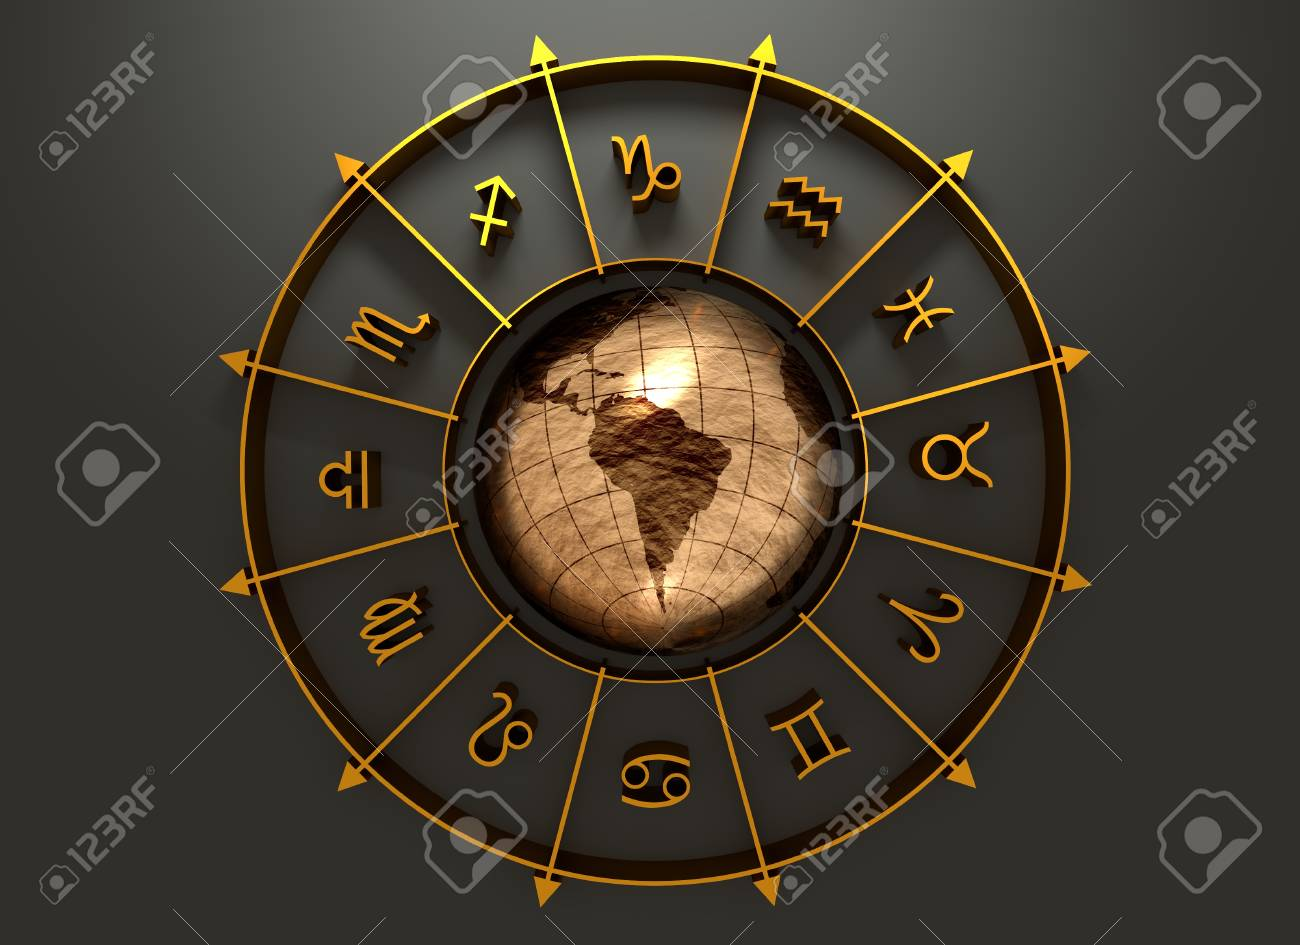 Golden astrological symbol in the circle earth globe in the golden astrological symbol in the circle earth globe in the center of the ring buycottarizona